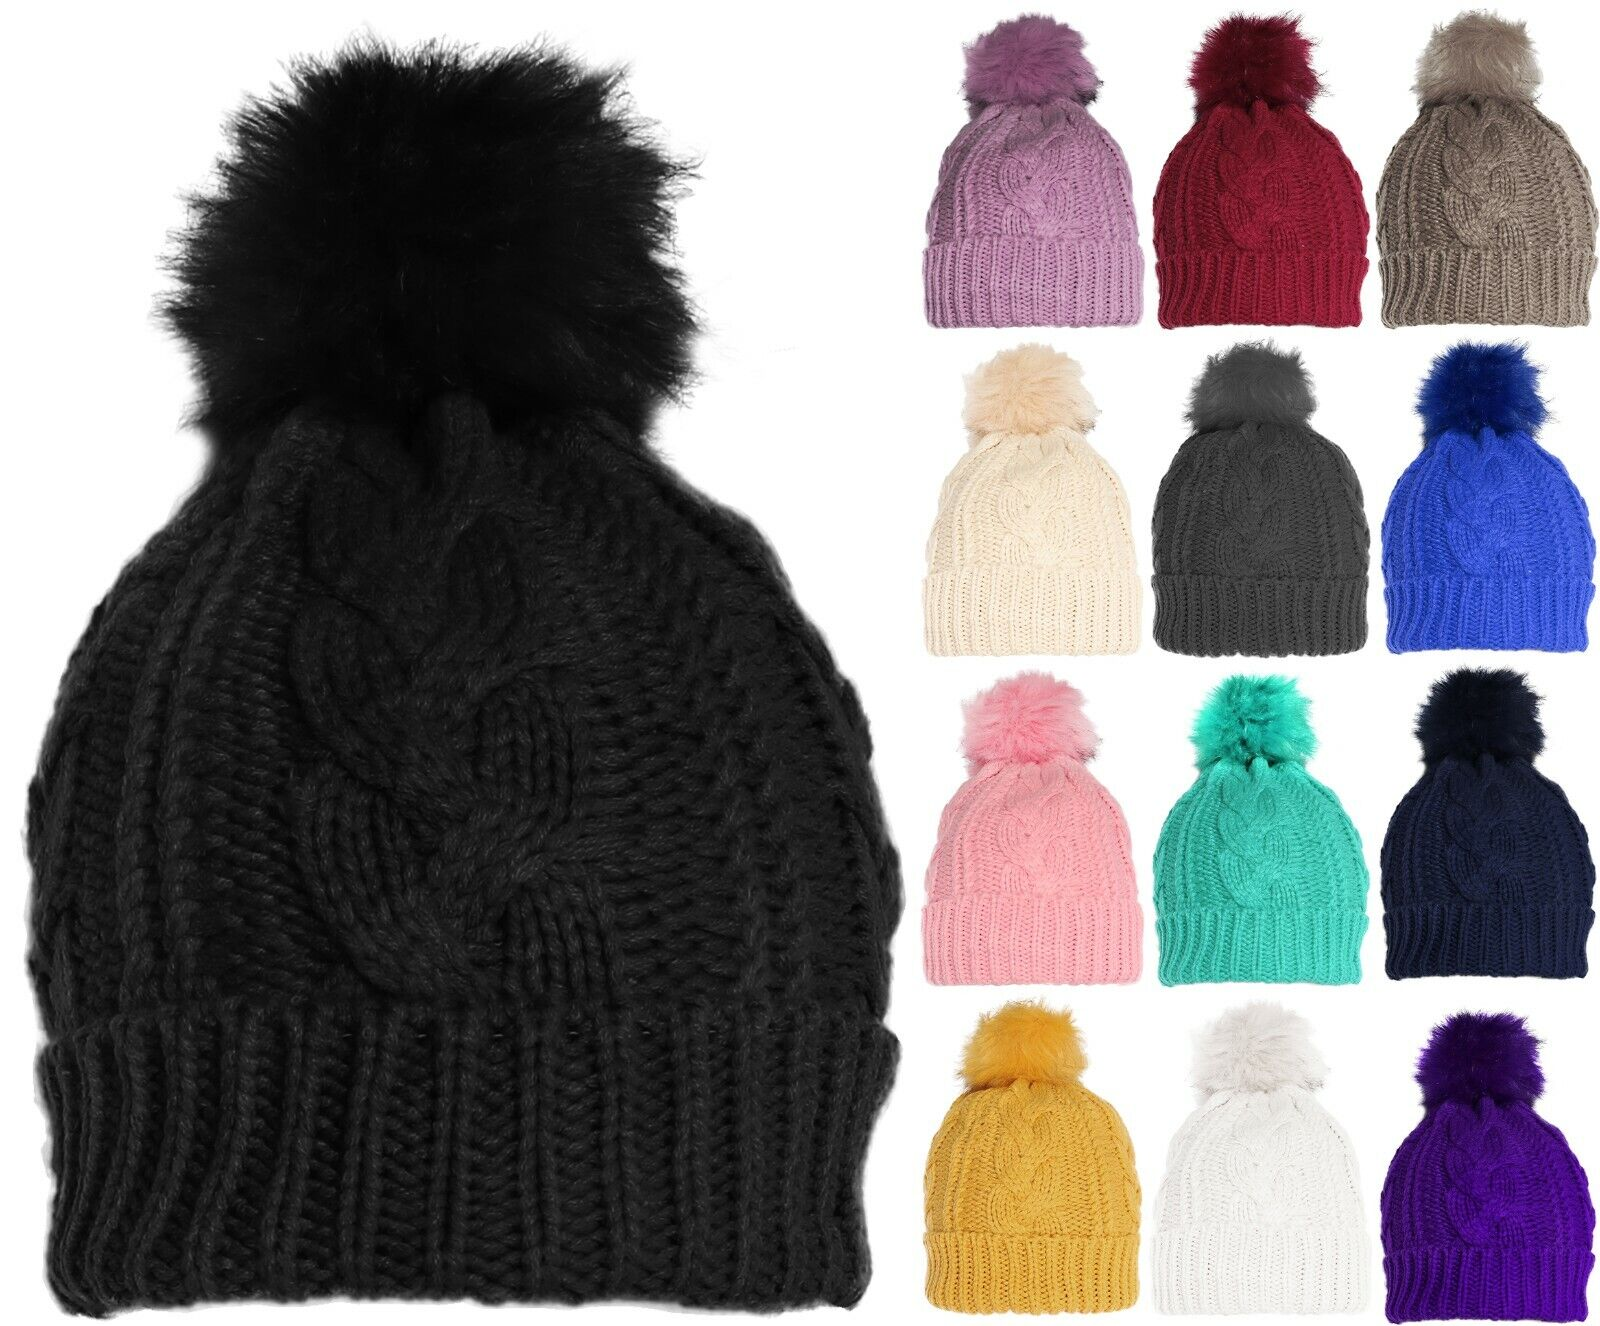 Womens Soft Stretch Cable Knit Winter Pom Pom Beanie Hat Clothing, Shoes & Accessories